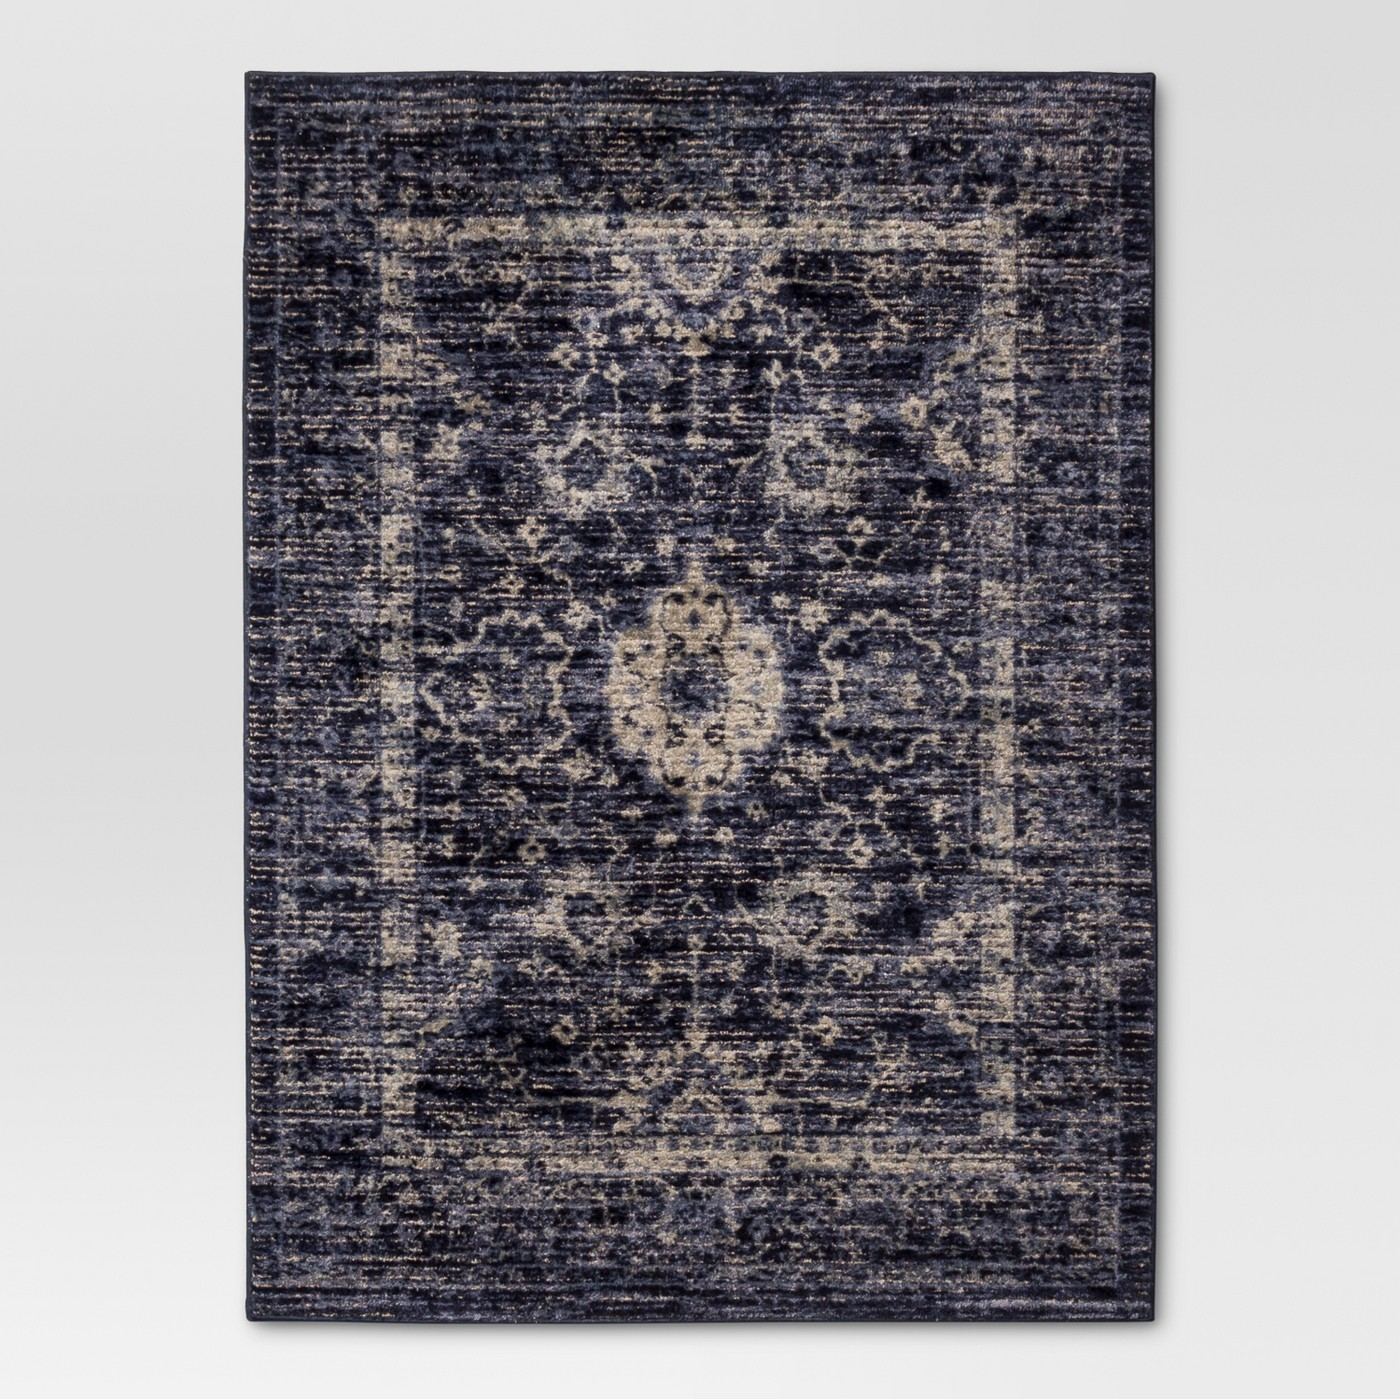 Vintage Distressed Rug - image 1 of 2